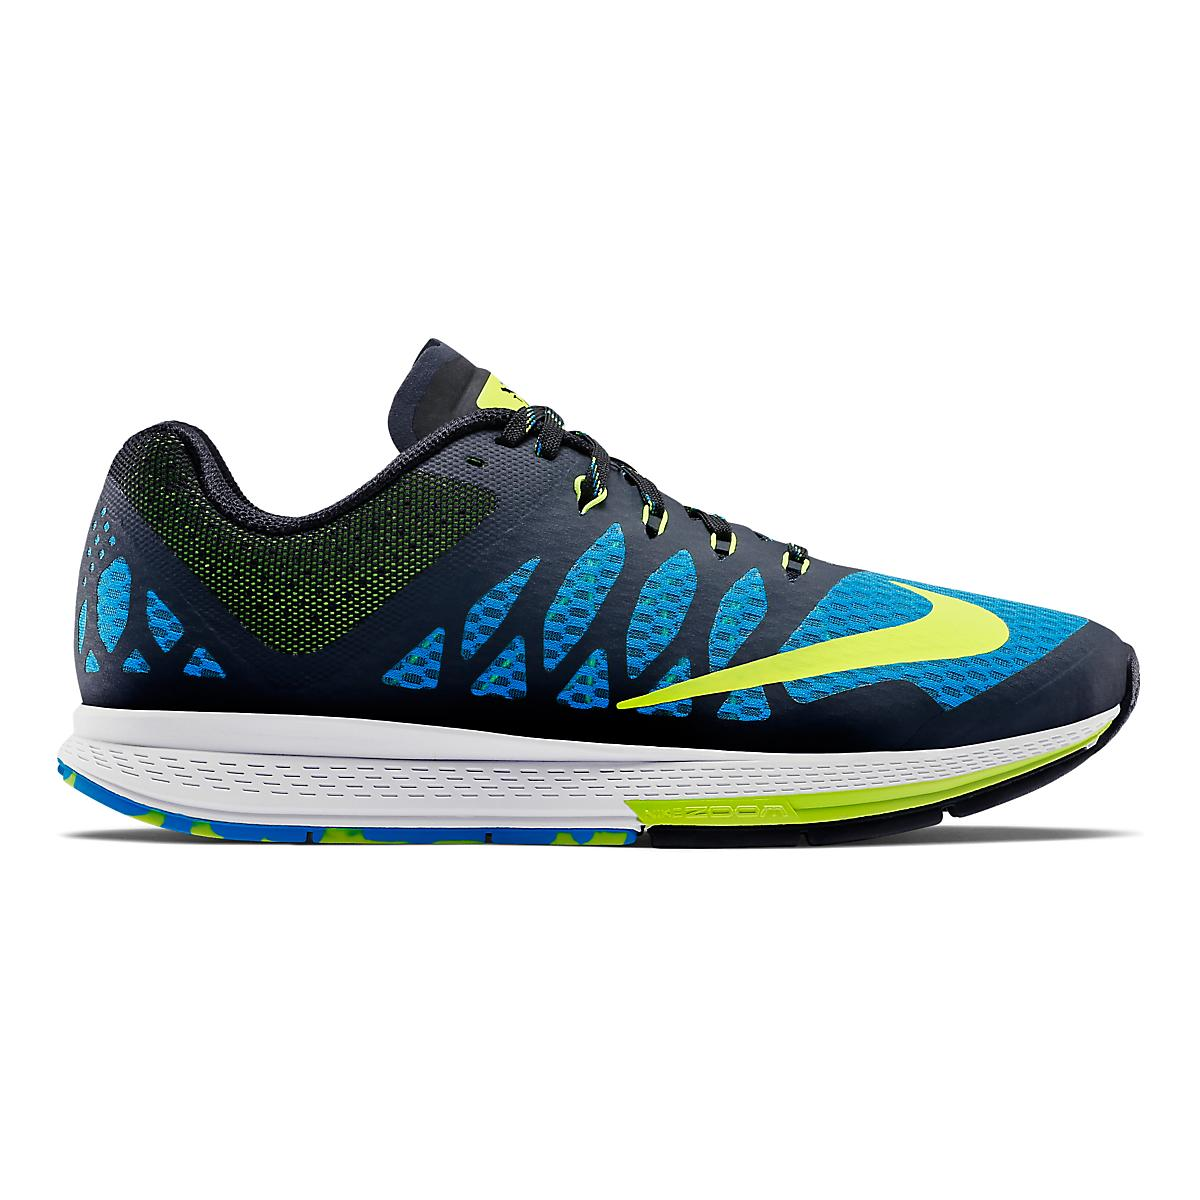 f120625281d Mens Nike Air Zoom Elite 7 Running Shoe at Road Runner Sports